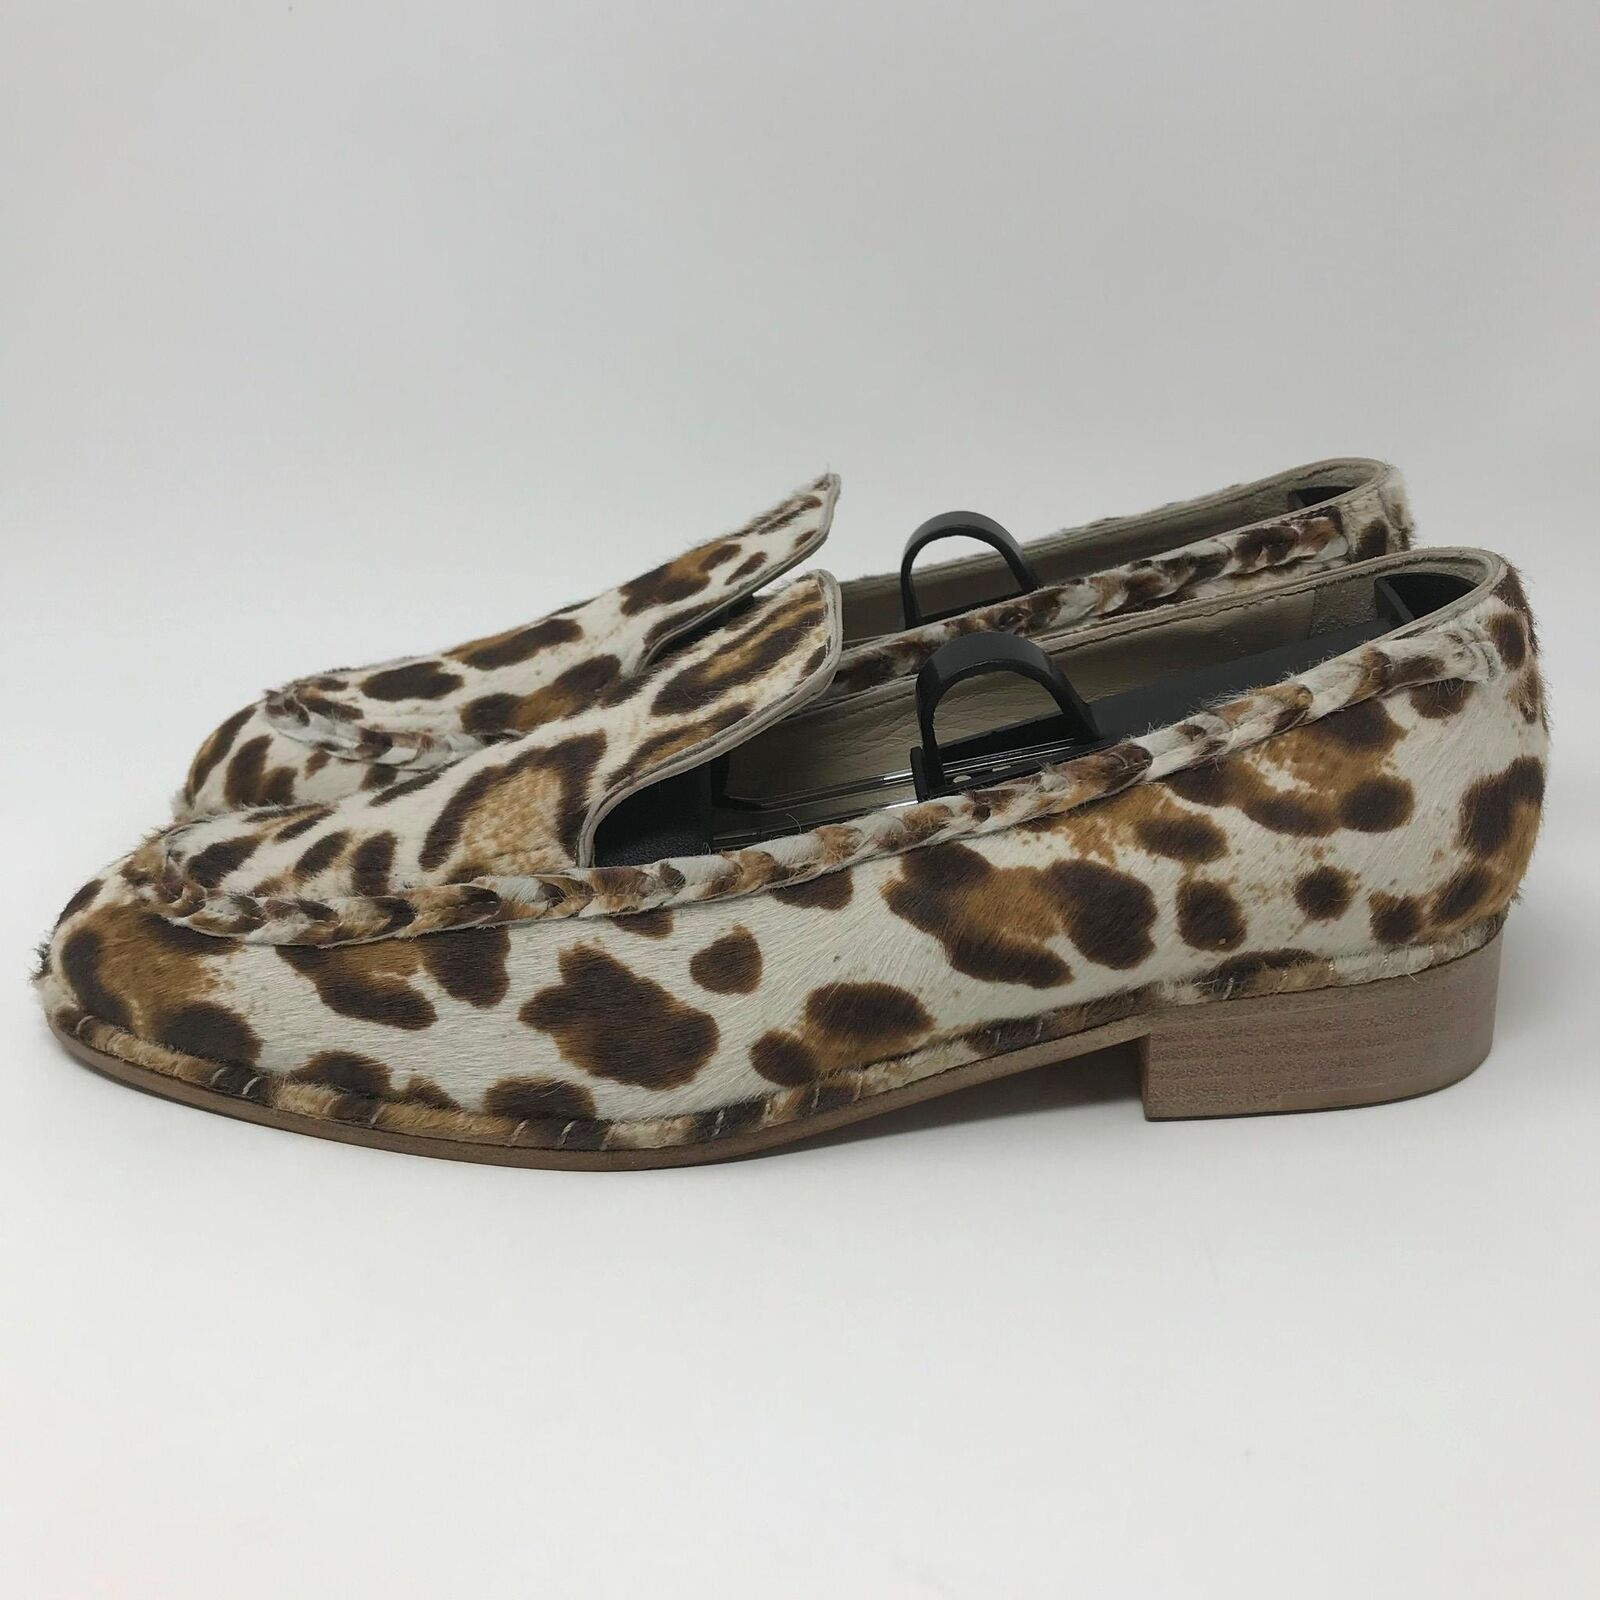 l'ultimo Laurence Dacade Dacade Dacade for Thakoon Pony Round Toe Suede Loafer Donna  Dimensione  39.5  alto sconto